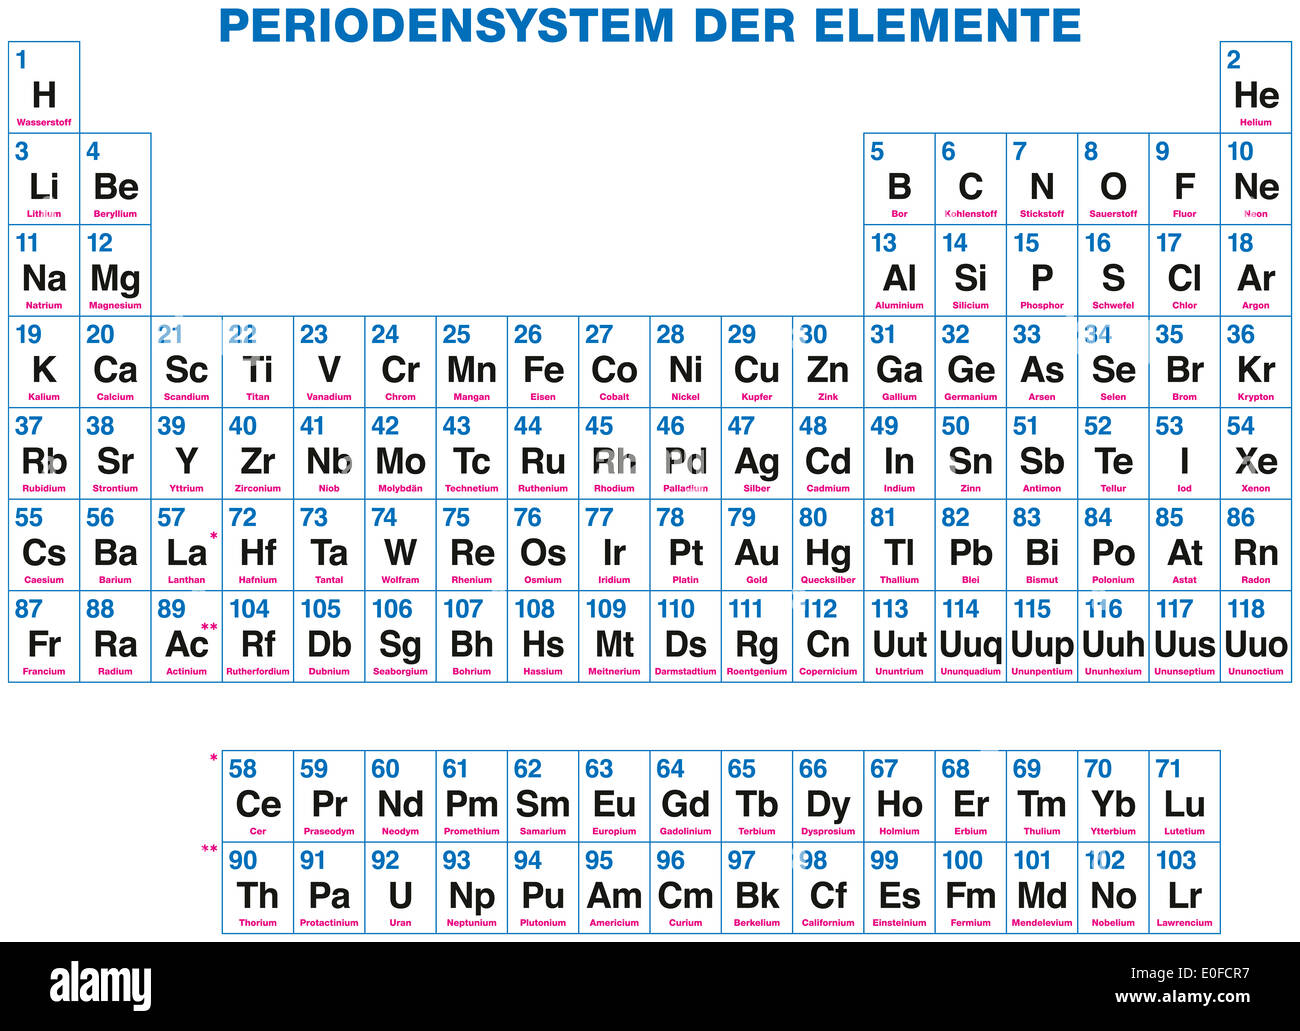 Periodic table of the elements german labeling 118 chemical periodic table of the elements german labeling 118 chemical elements organized on the basis of their atomic numbers urtaz Choice Image